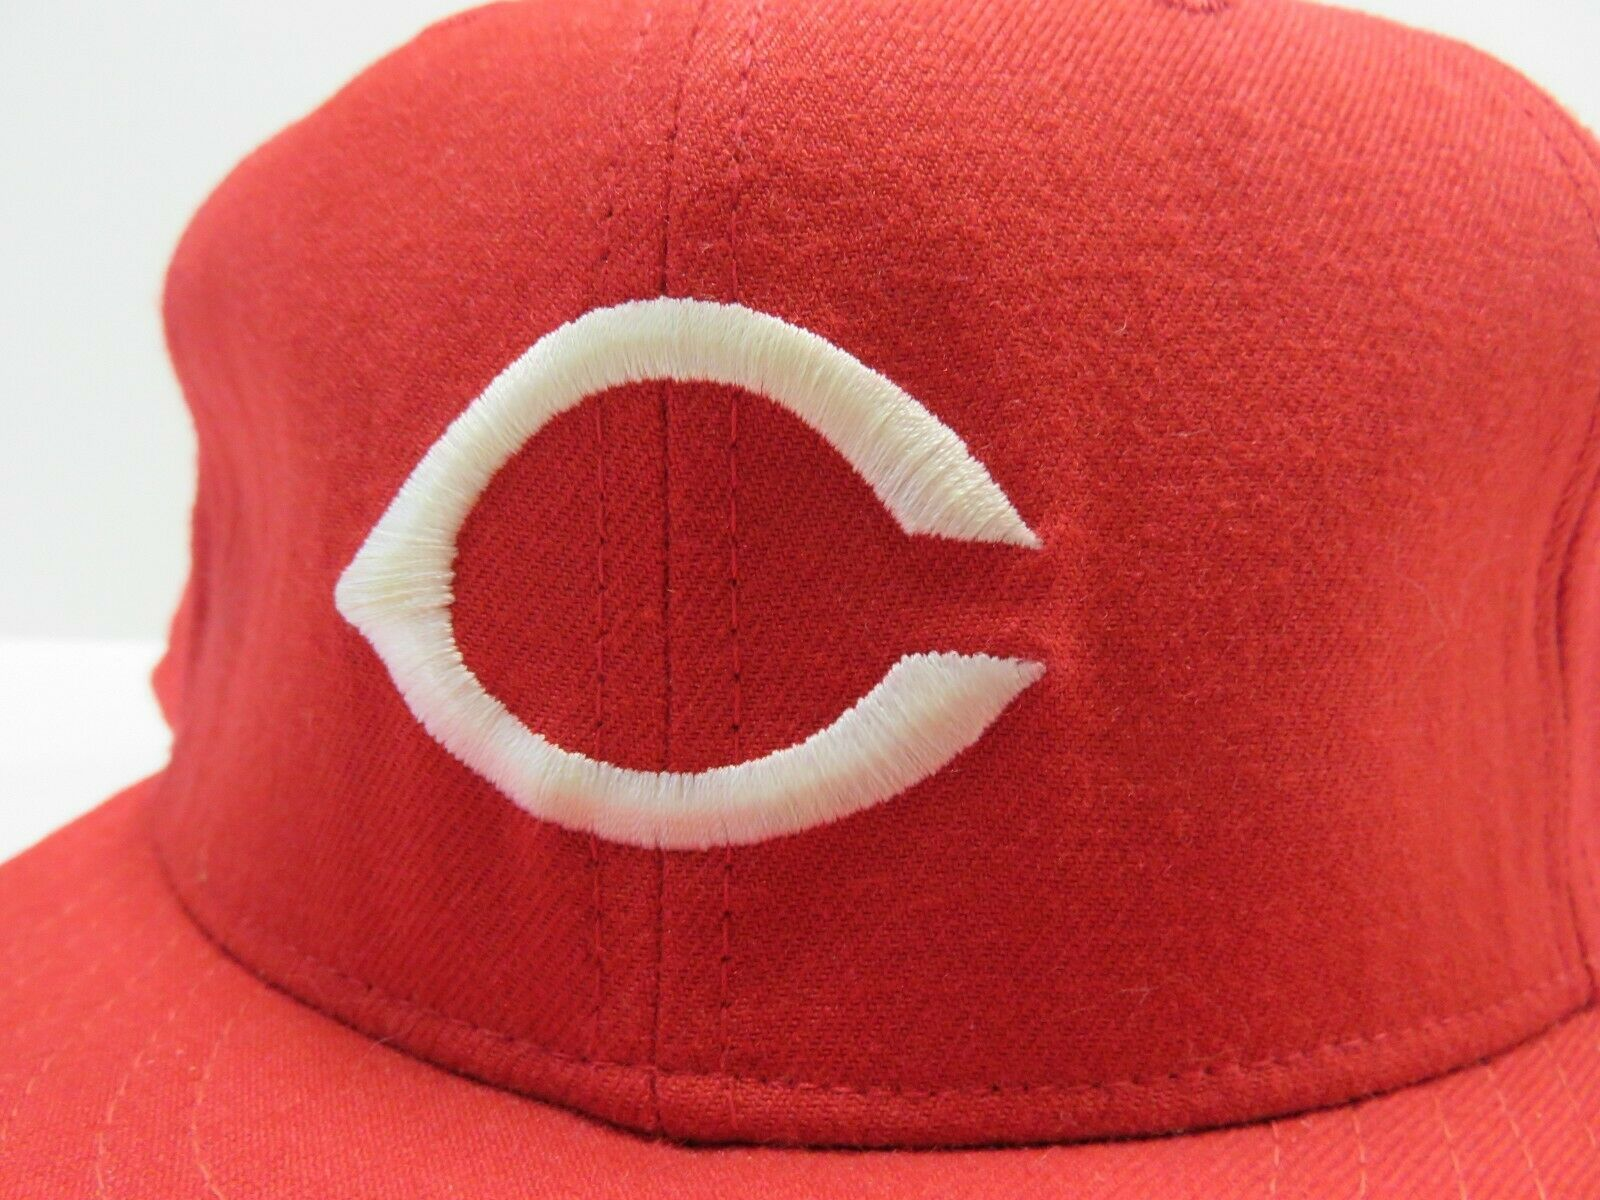 VTG New Era Cincinnati Reds MLB Baseball Fitted Hat Adult Size 7 3/4 Made in USA image 2